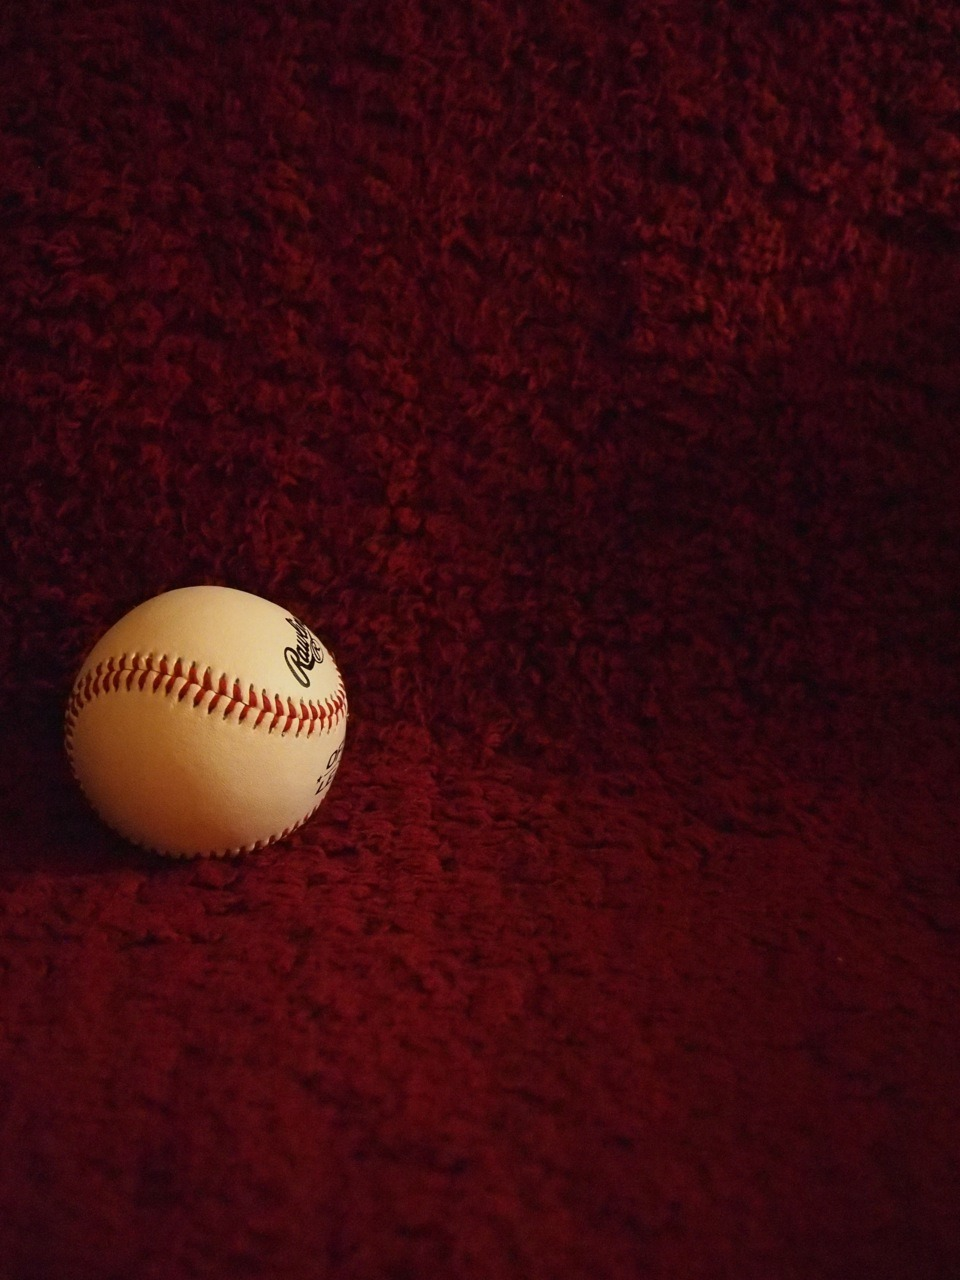 Space Composition: I took a picture of a baseball on my sofa. I left a lot of space on the right, so it will lead your eyes to the baseball on the left. Contrast: This photo has a big contrast with the darks and lights. The baseball has a sharp color(white) while the background has a dark color(dark red). Also, the baseball has two tones, half of it is darker than the other half, so once again it will catch your attention. Communications: This photograph communicates lonely and isolation. The baseball is staying alone in the corner.